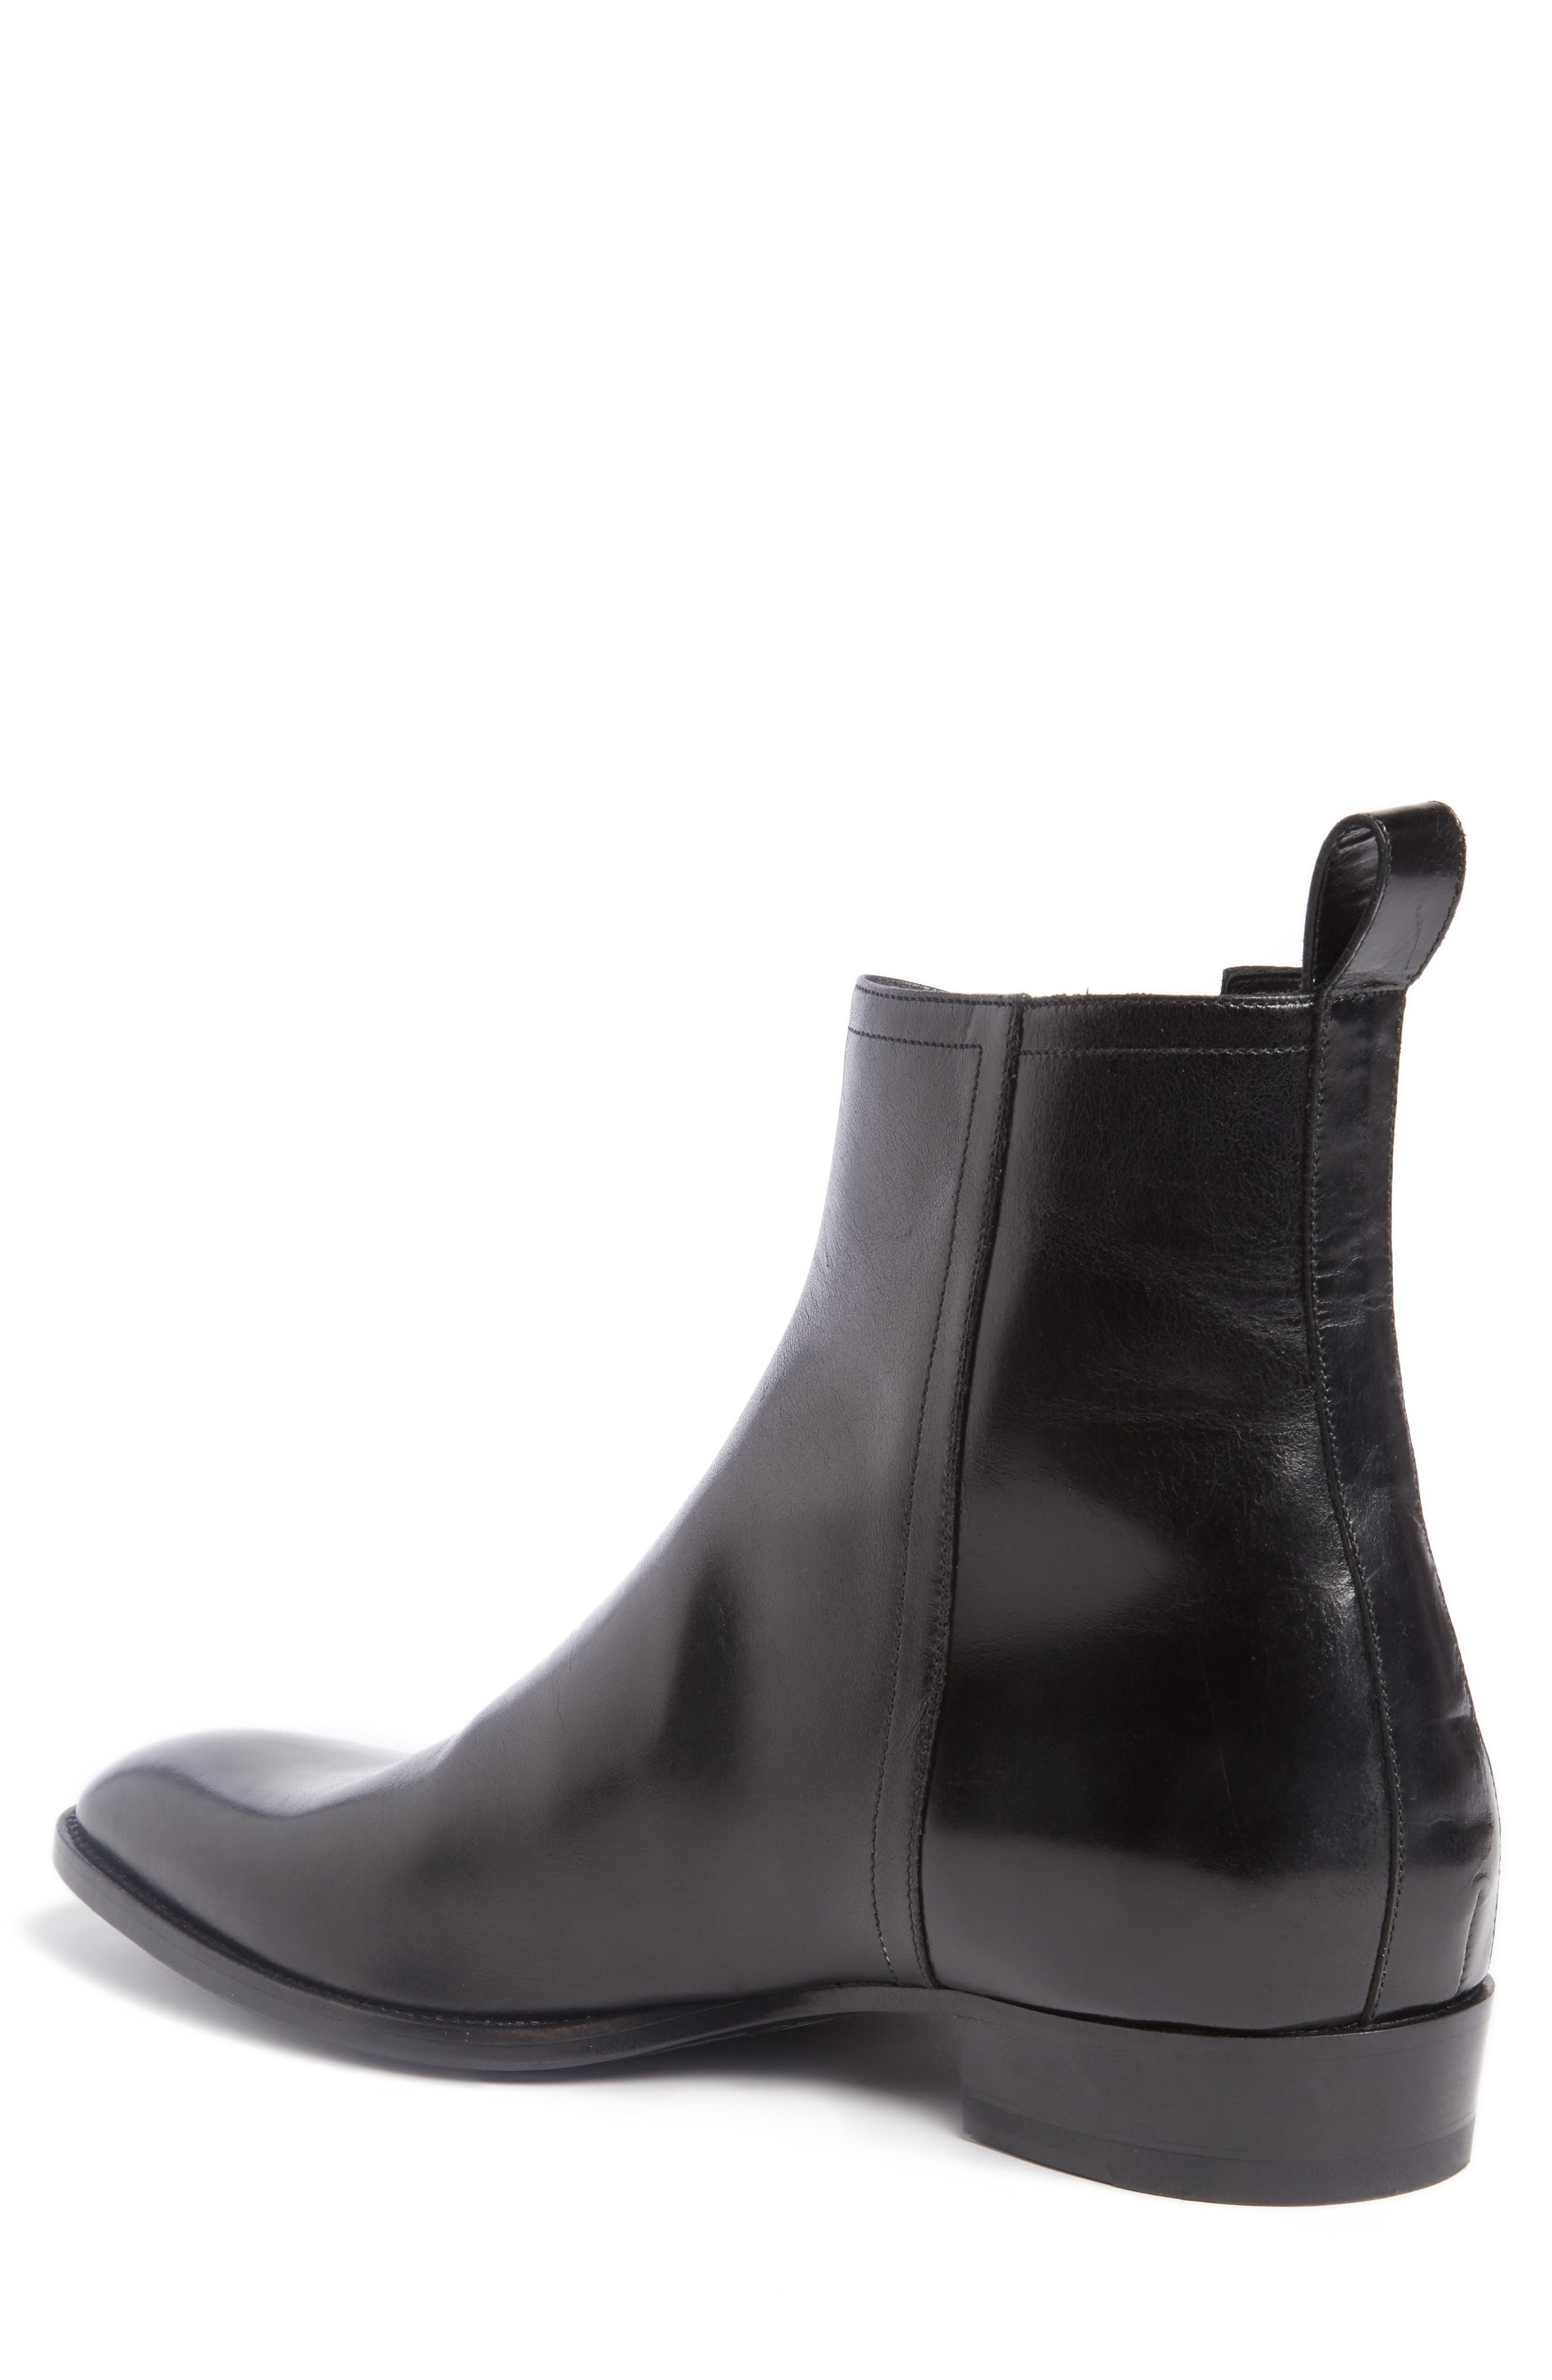 Wyatt Side Zip Boot,                             Alternate thumbnail 2, color,                             Nero Leather